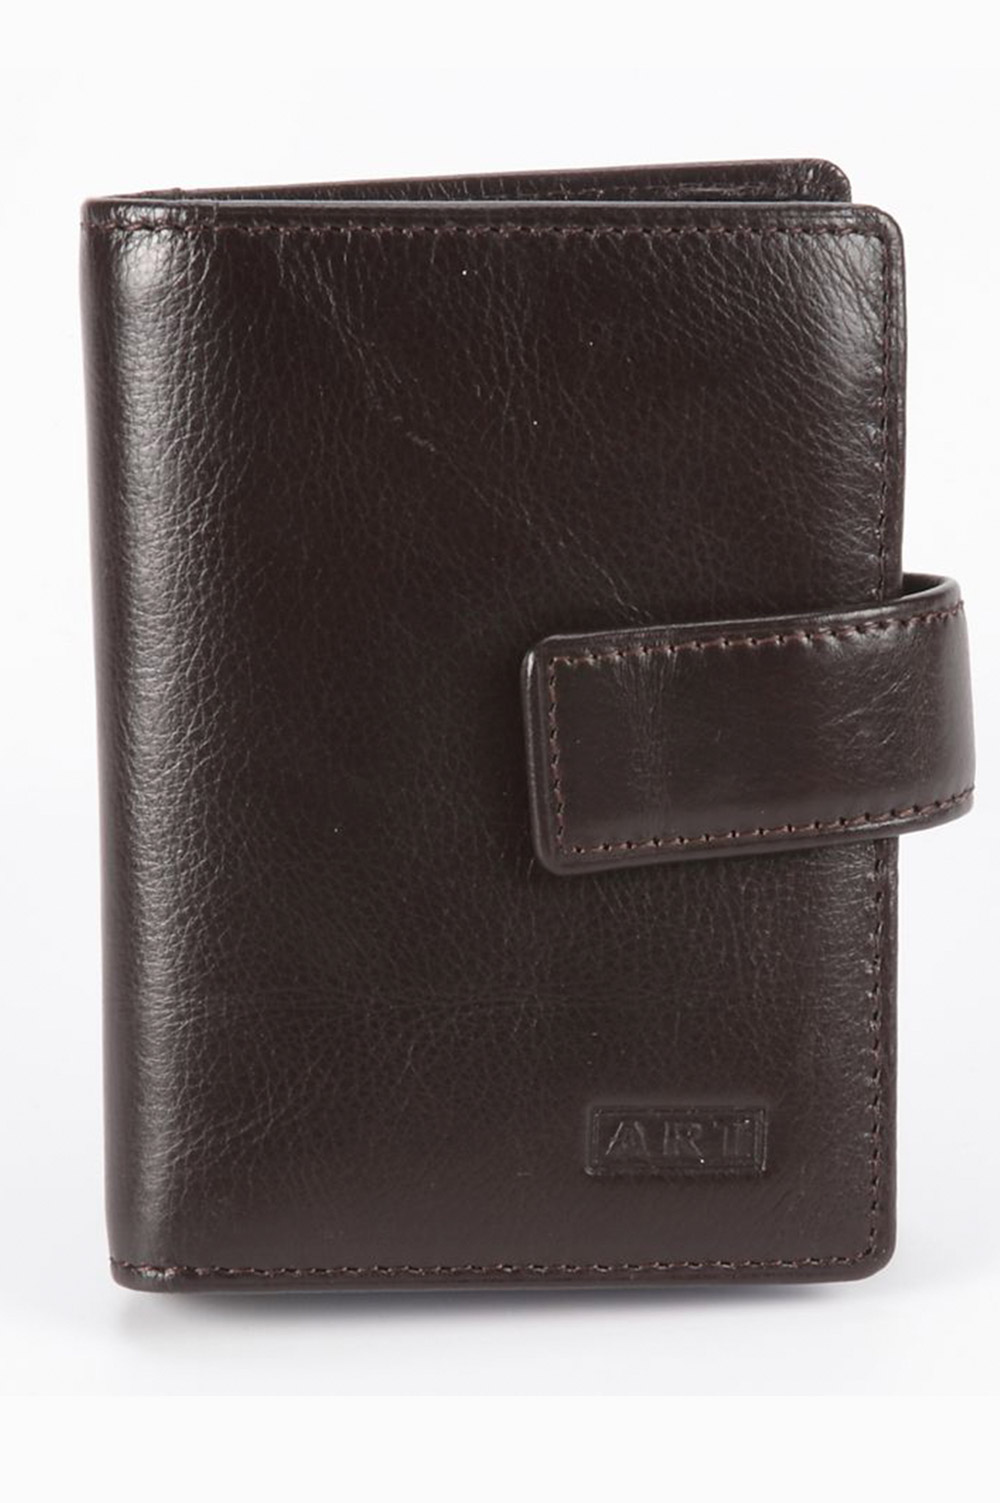 Art Designer Brown Leather Wallet - 418364